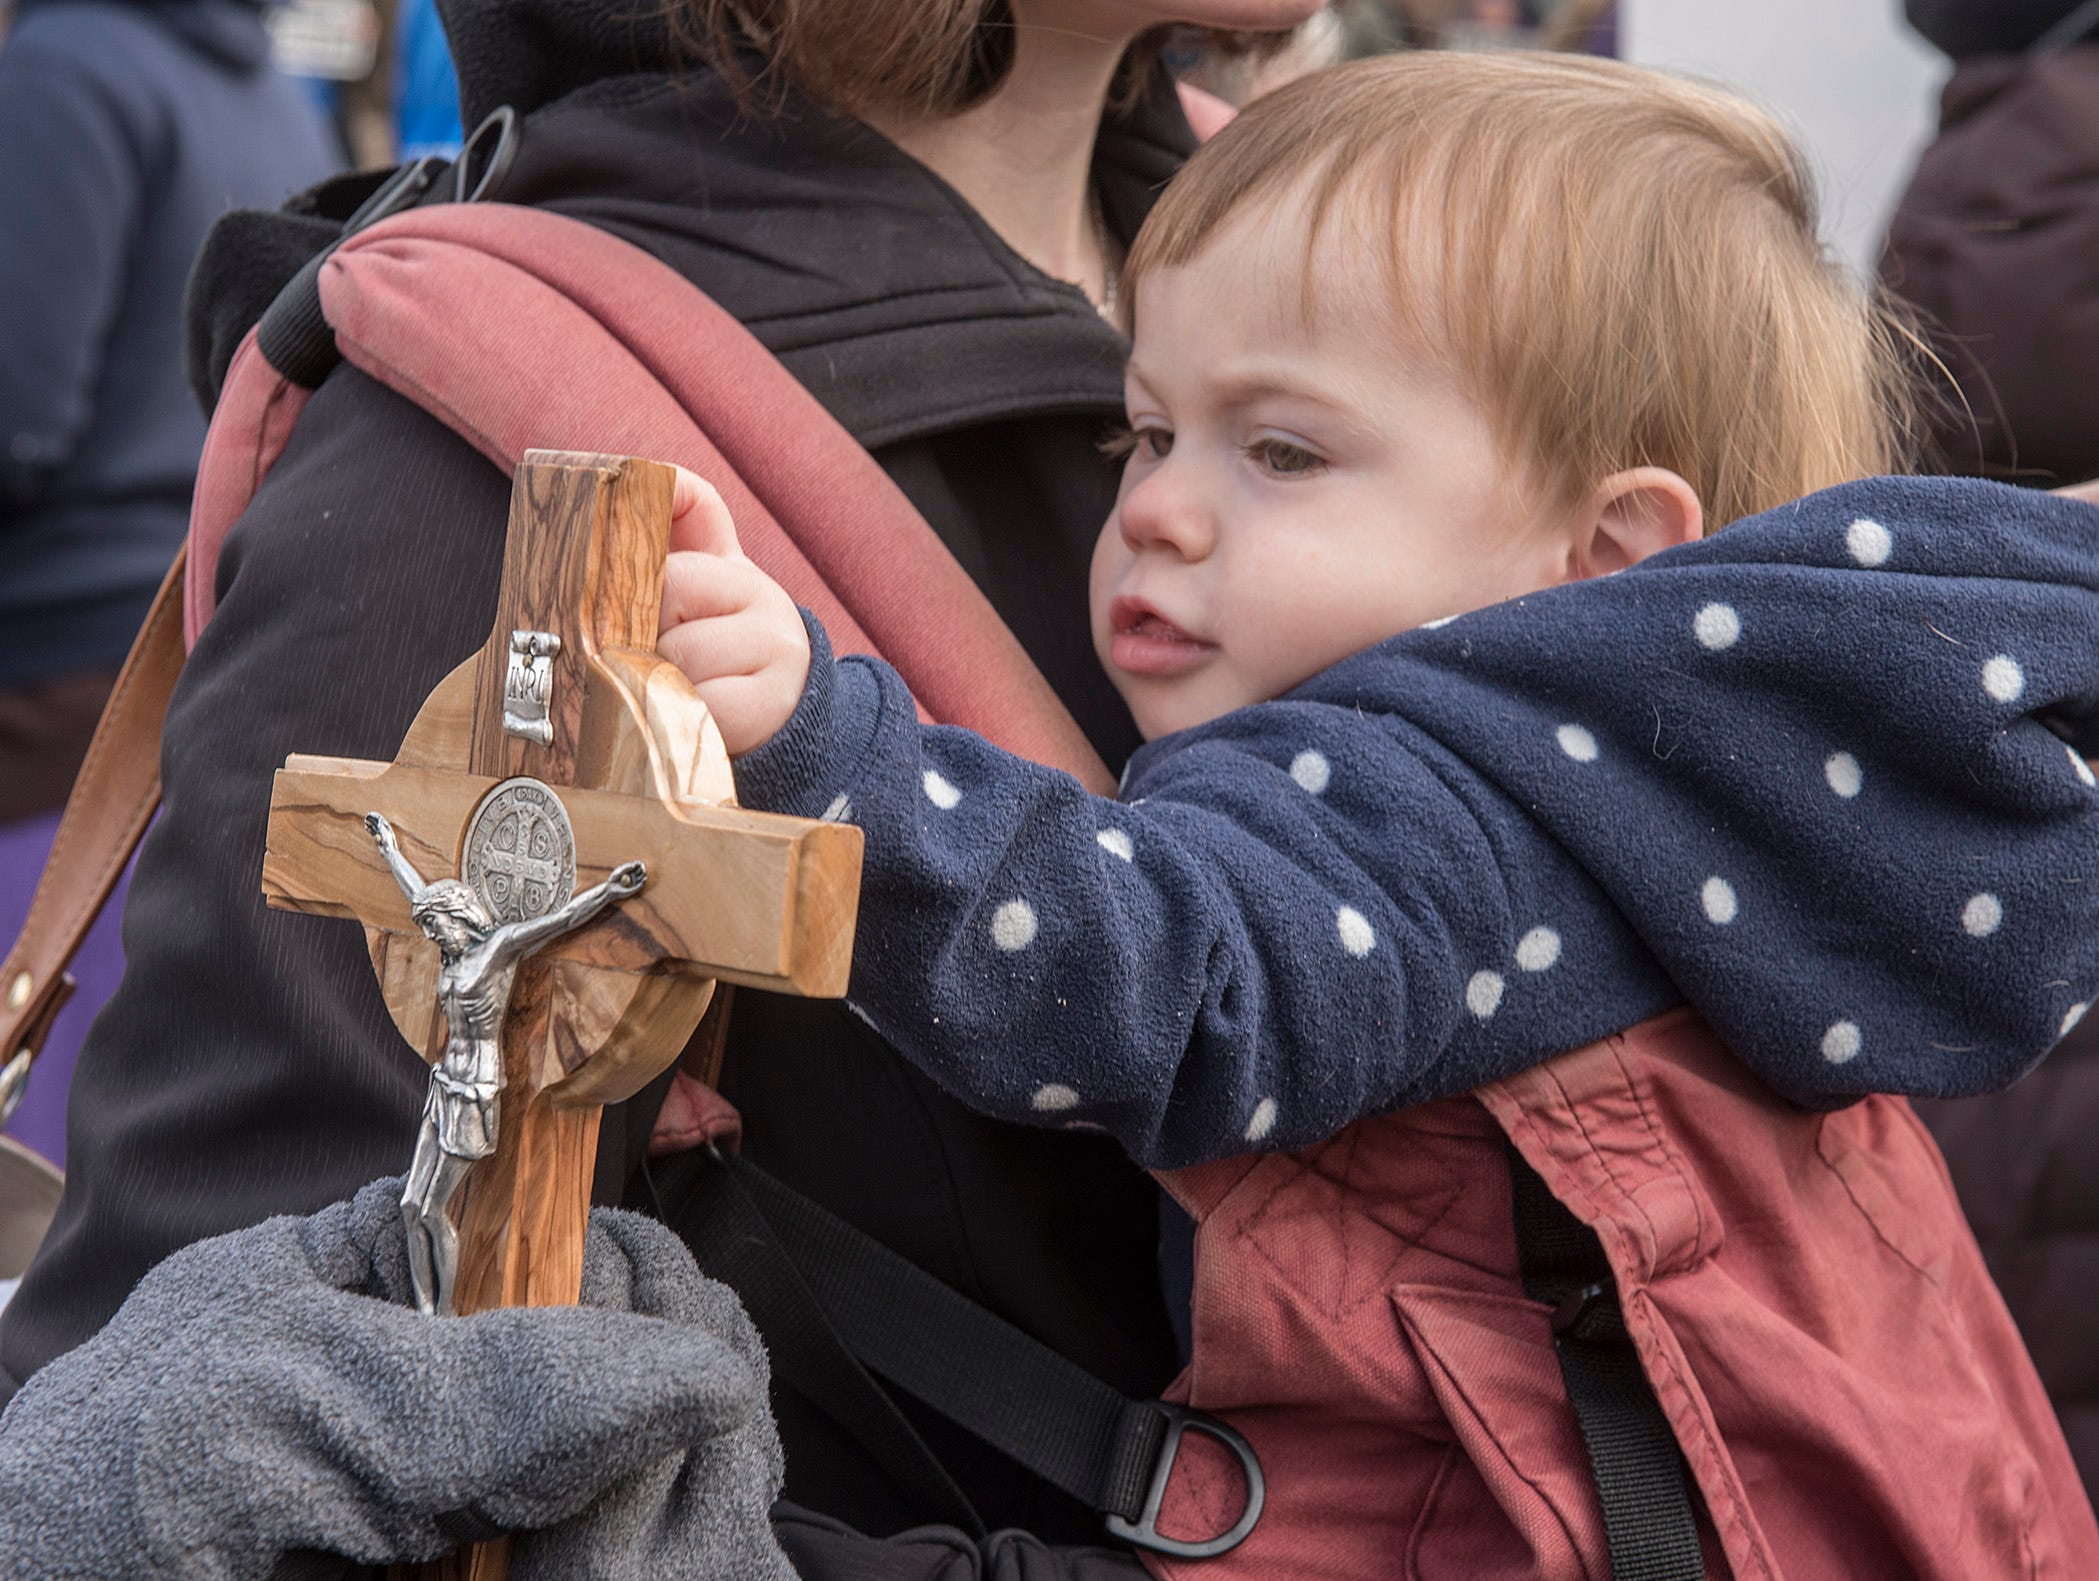 One year old Eamon Kovacs touches a crucifix held by an clinic protester. Eamon is held by his mother, Elizabeth Kovacs. They are from Harper Woods.